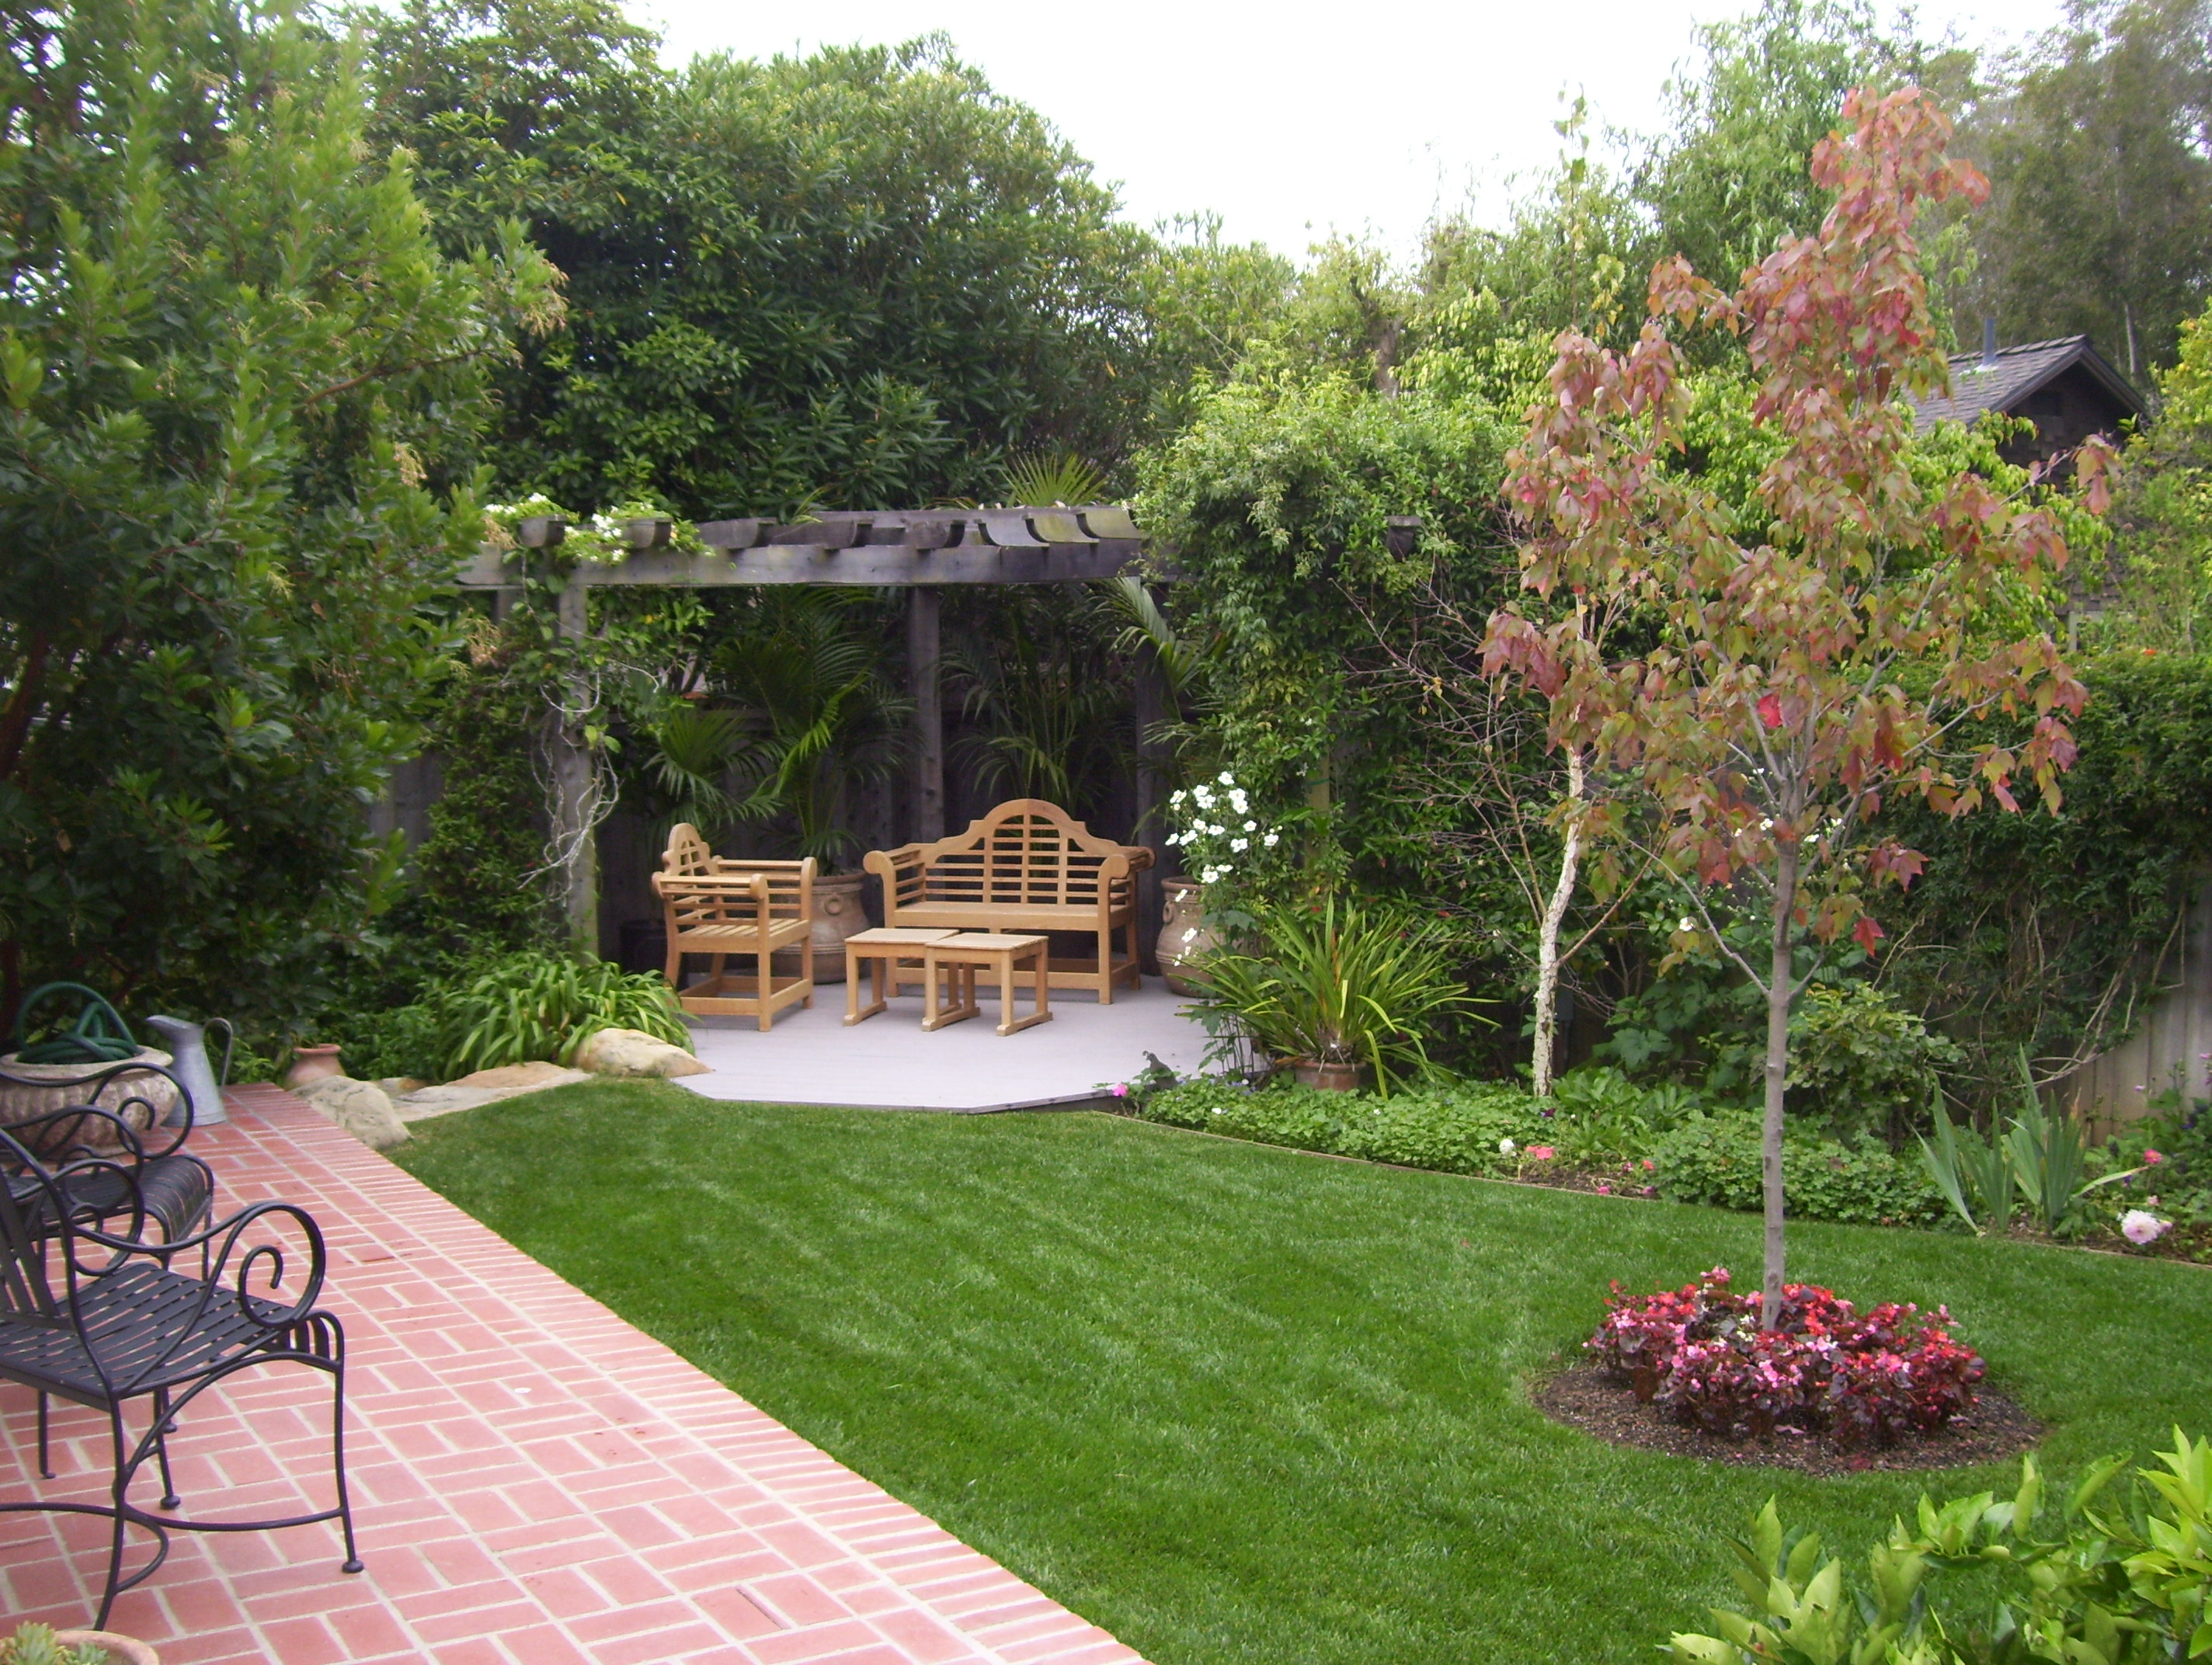 Backyard landscaping ideas santa barbara down to earth for Outdoor landscape design